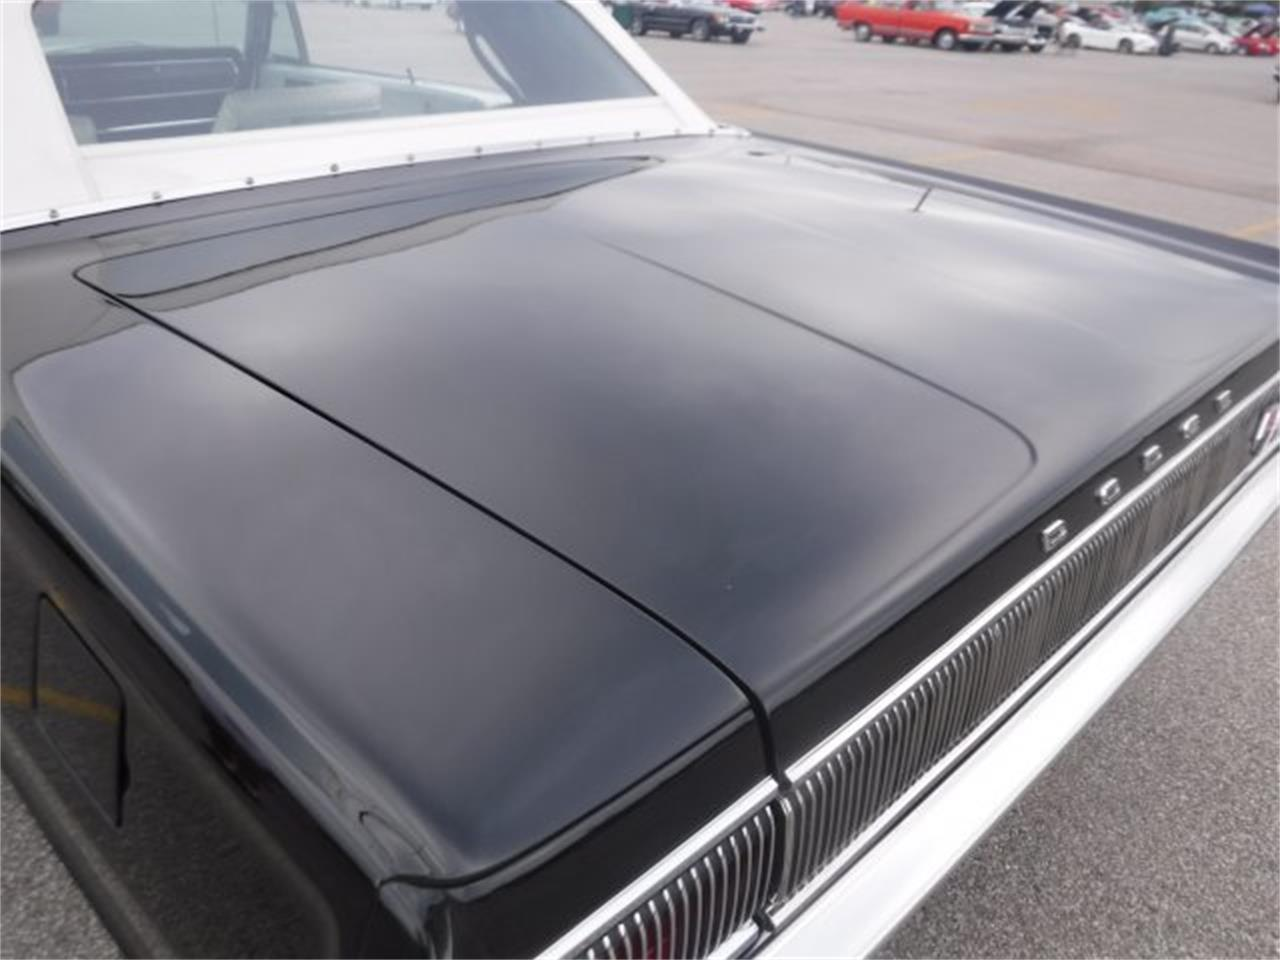 Large Picture of 1967 Coronet R/T located in Ohio - $55,500.00 - QZLZ